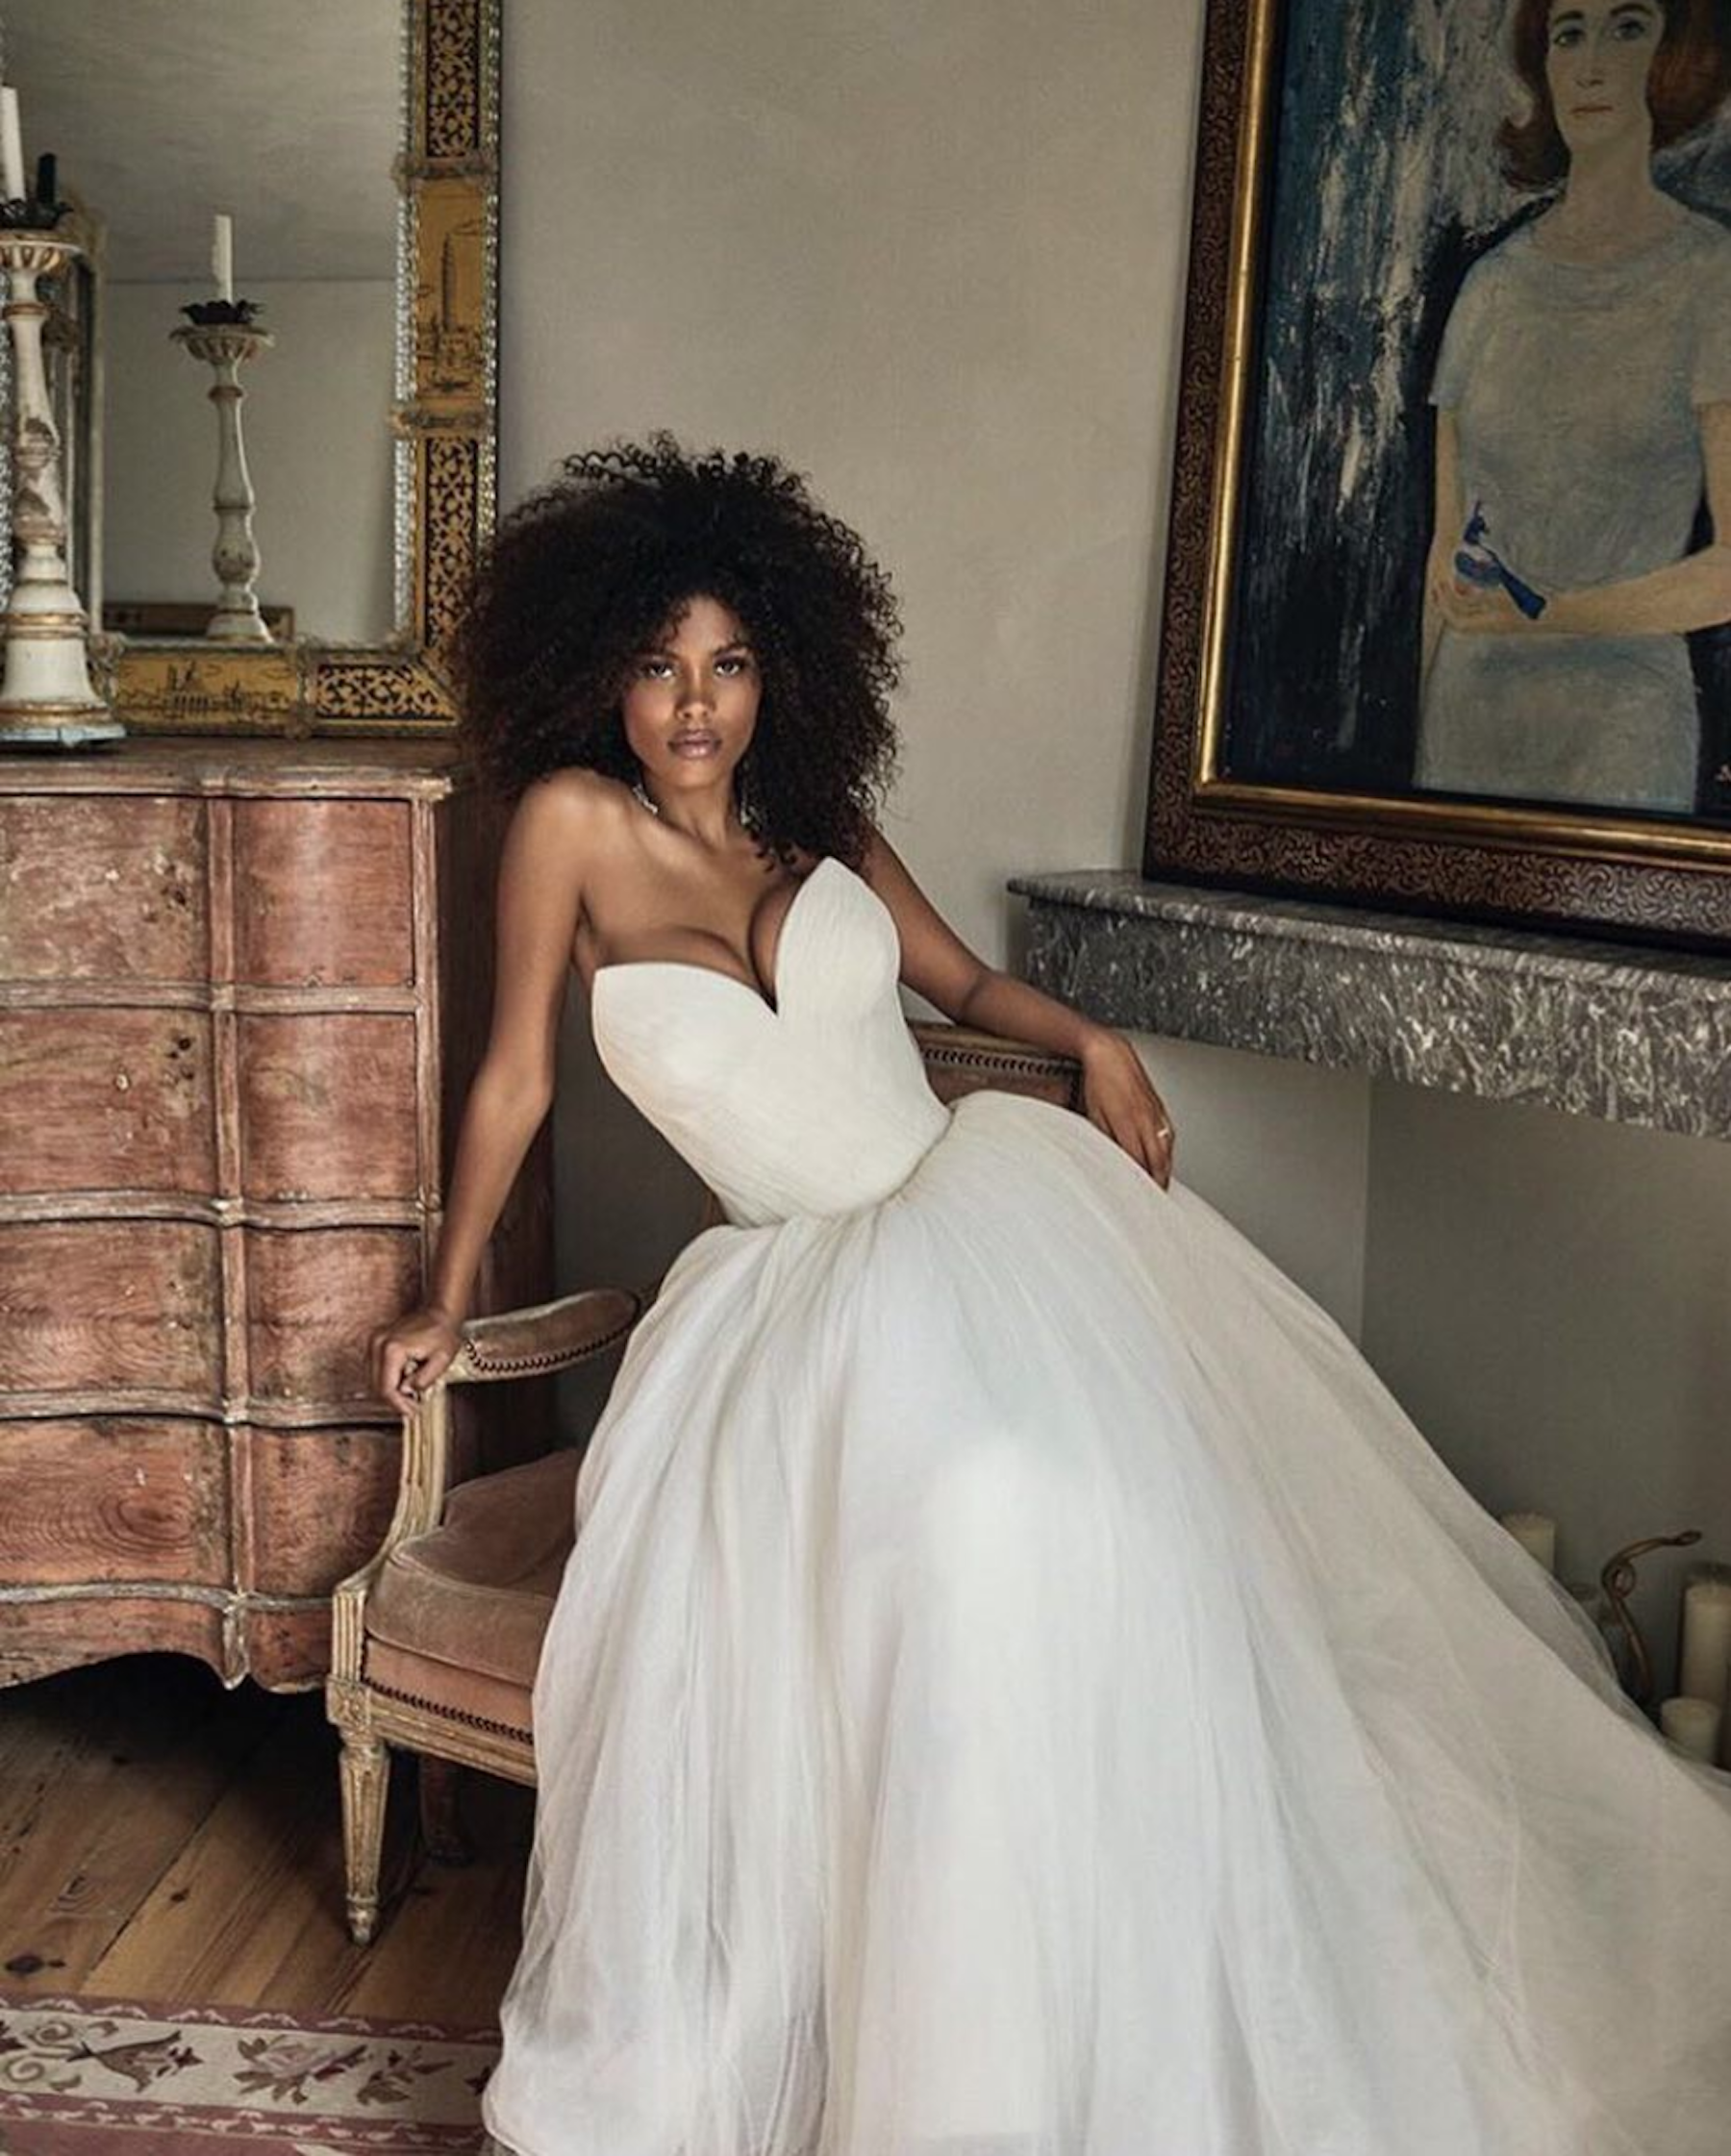 """Model Tina Kunakey said """"I do"""" to long-time beau and actor Vincent Cassel in custom Vera Wang. - """"This gown is all about youth, charm, and couture draping with a voluminous ballskirt,"""" said Wang.Photo by Victor Santiago."""